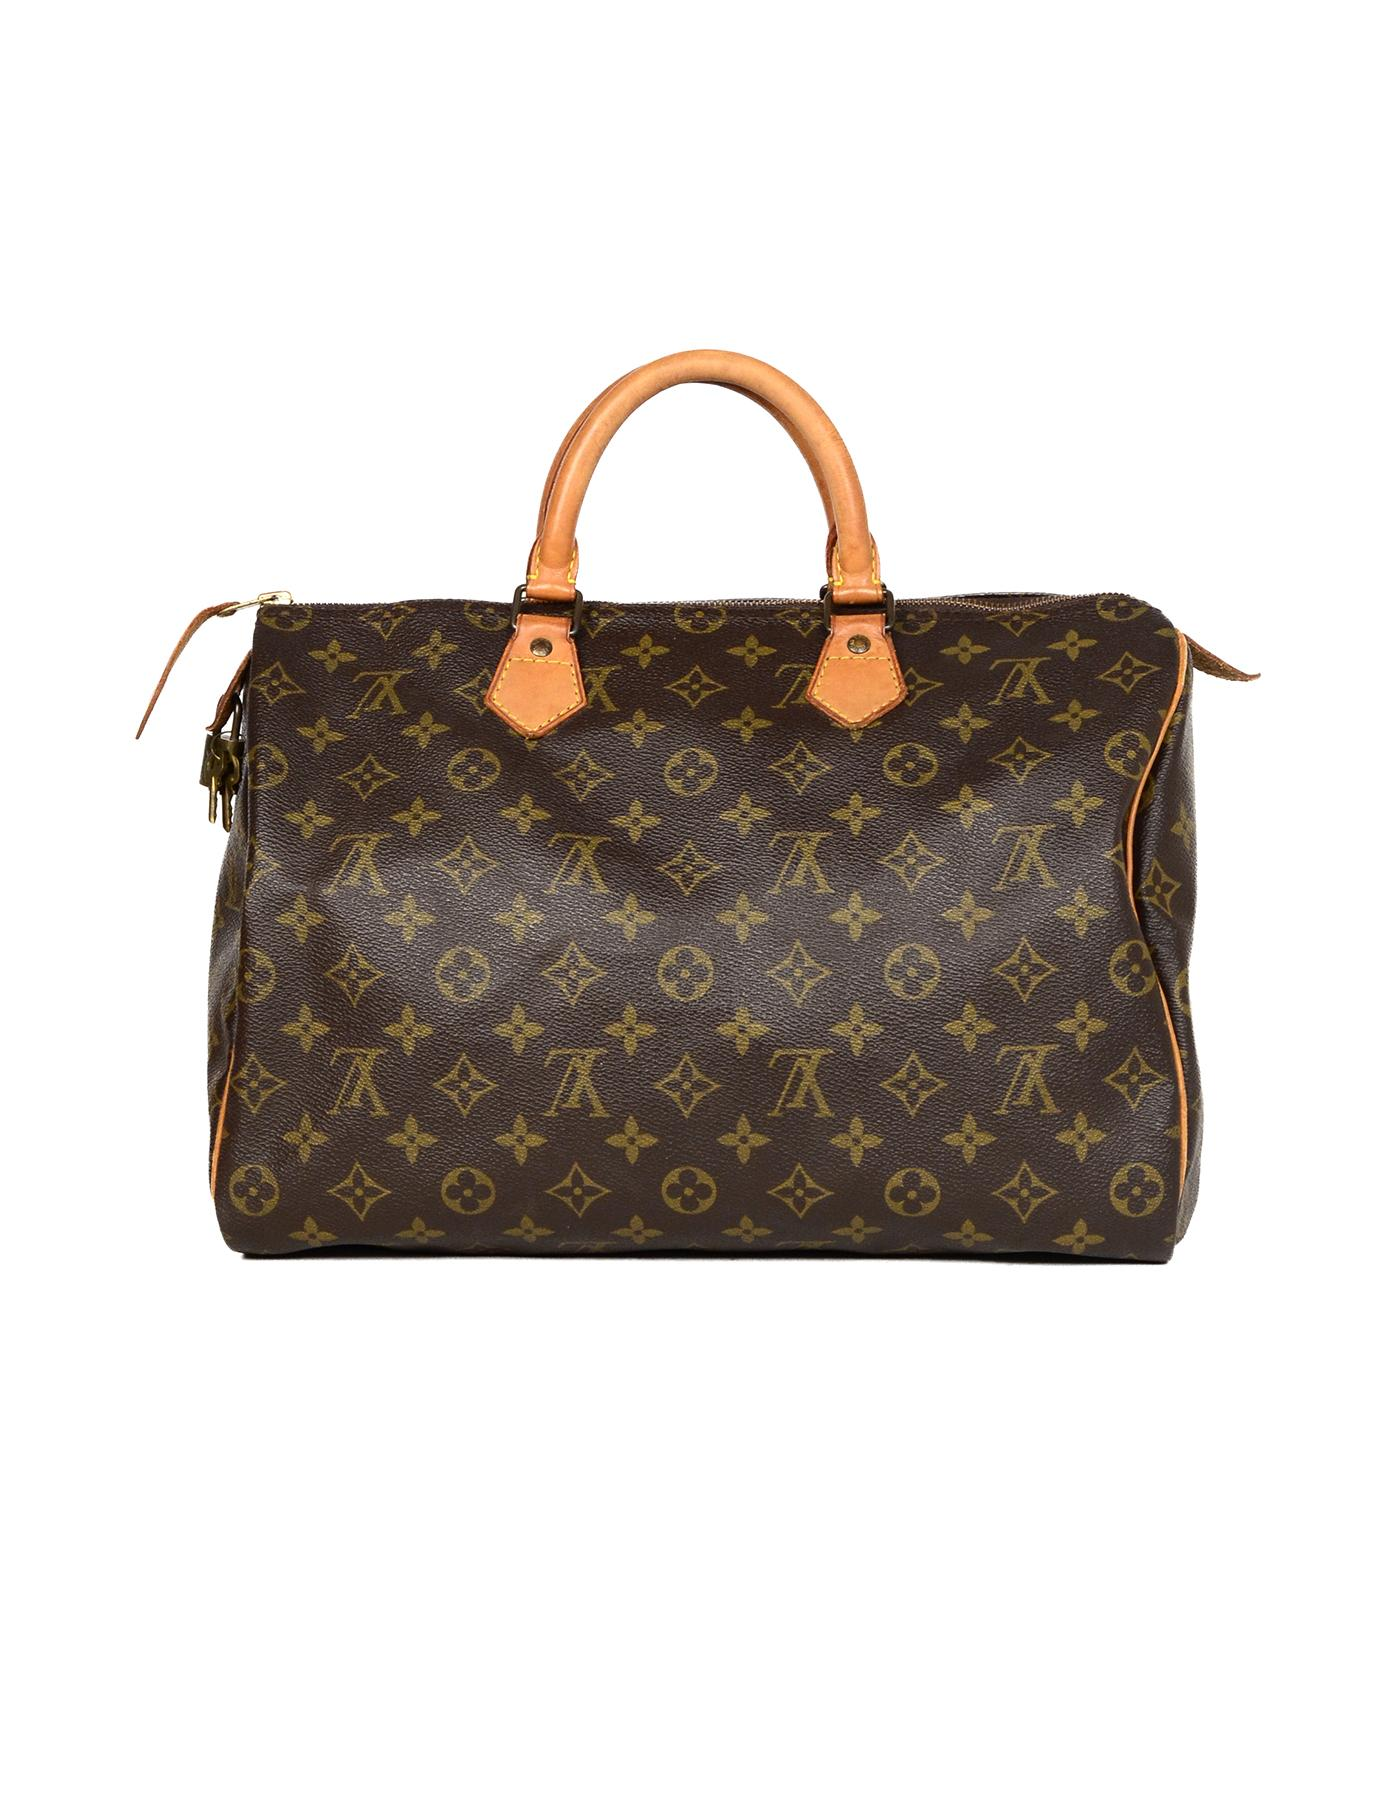 Louis Vuitton Vtg  90s LV Monogram Canvas Speedy 35 Top Handle Bag W  Lock  and Key For Sale at 1stdibs aba5e3ab2c